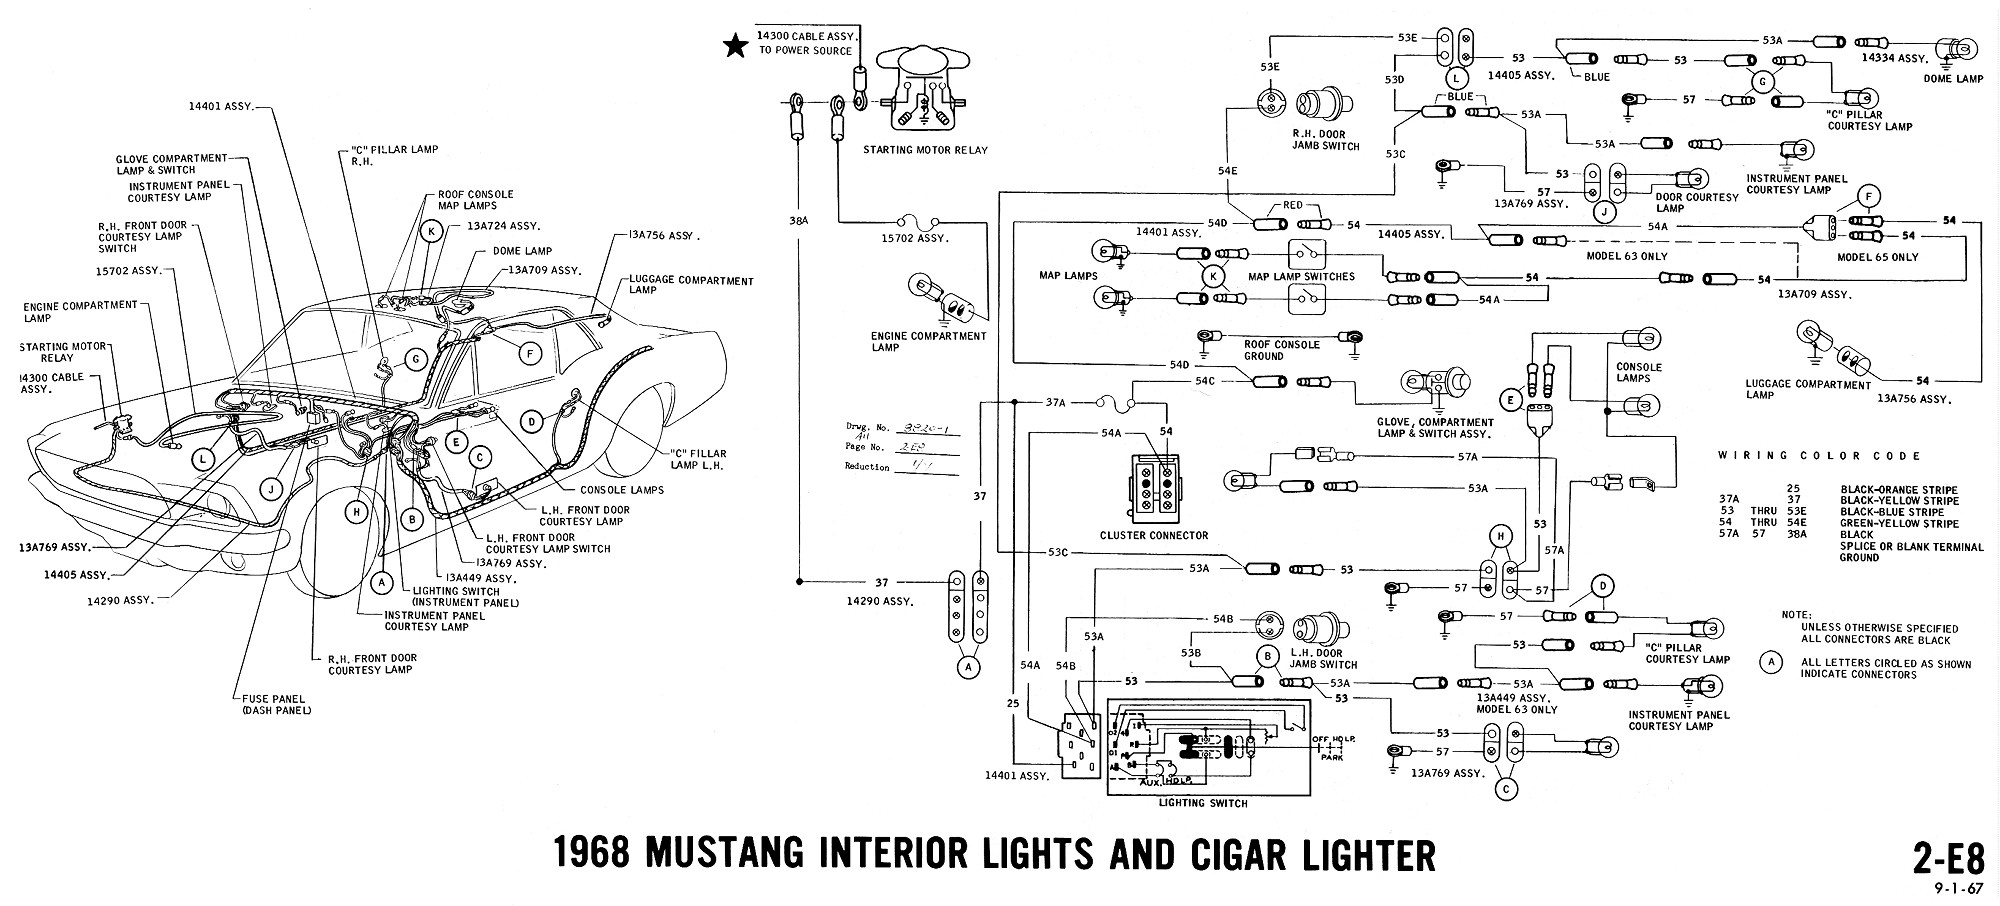 1968 mustang starter relay wiring diagram wiring diagram database1968 mustang wiring diagrams and vacuum schematics average joe 1968 mustang starter solenoid wiring diagram 1968 mustang starter relay wiring diagram